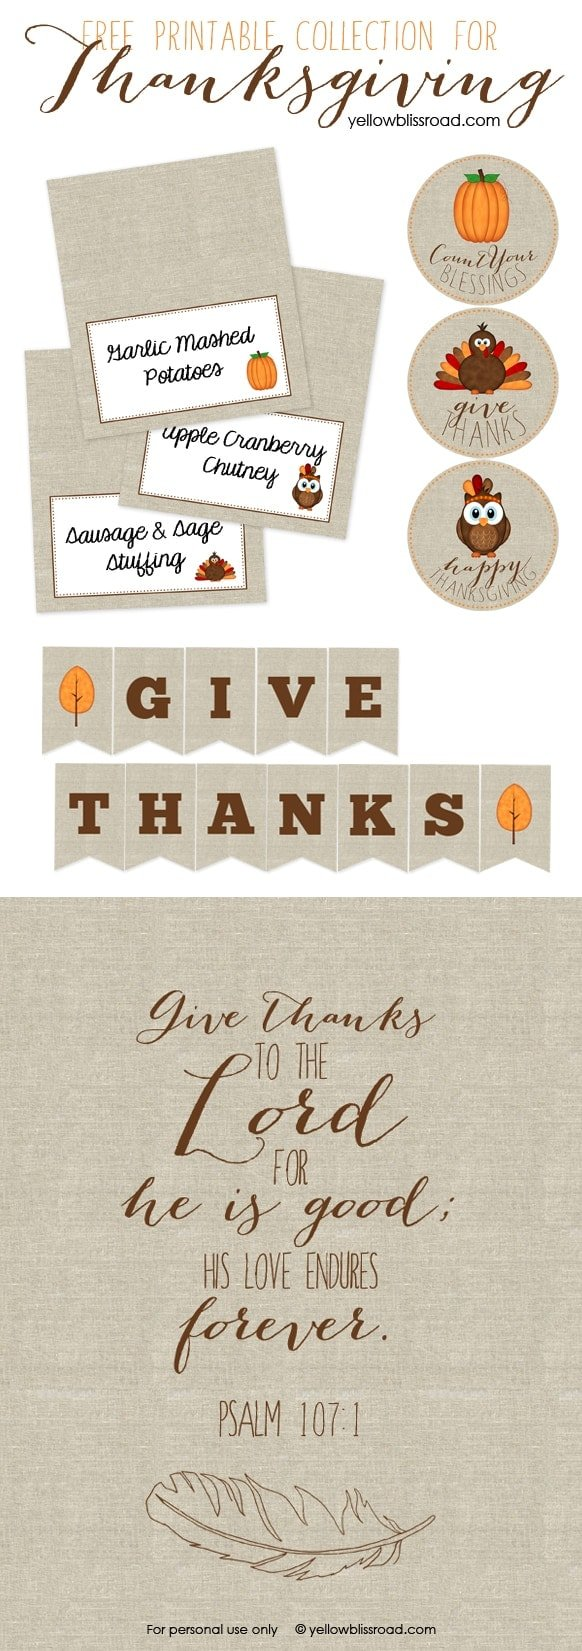 Free Printable Thanksgiving Collection